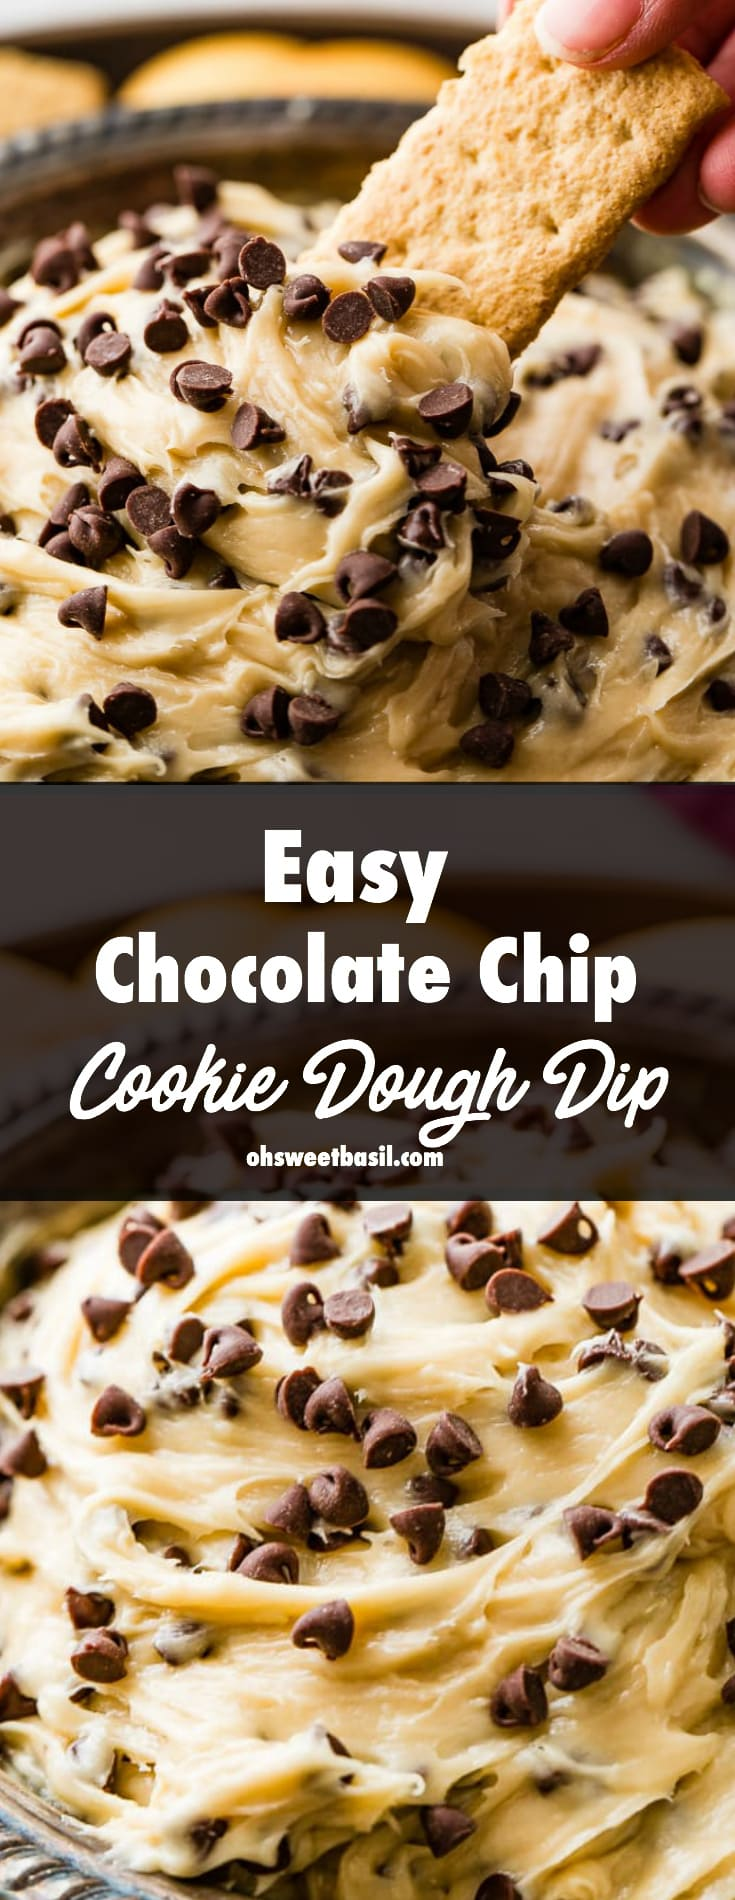 a metal bowl full of easy chocolate chip cookie dough dip with a vanilla wafer scooping some up